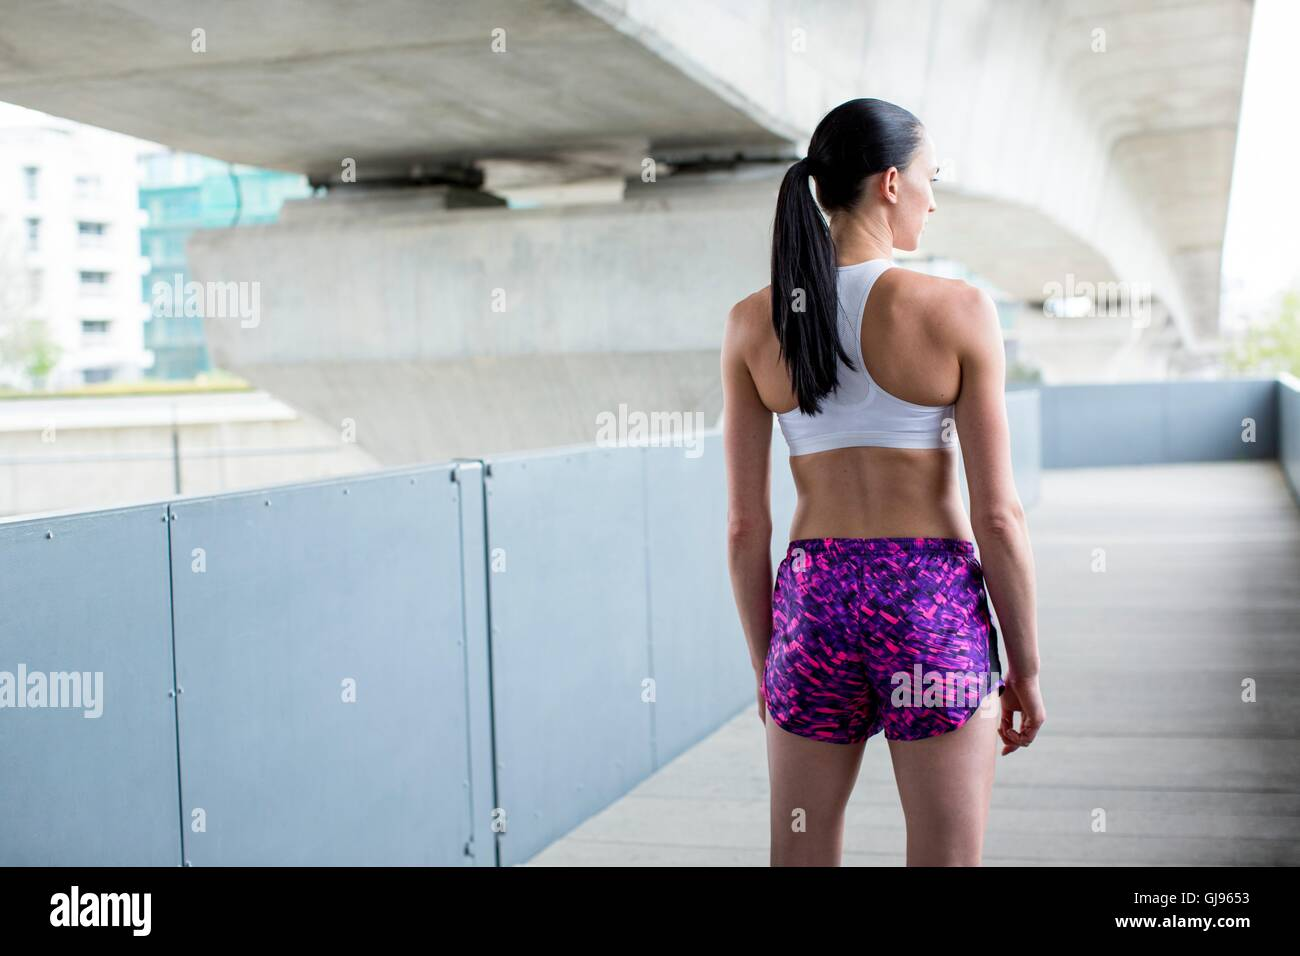 MODEL RELEASED. Portrait of young woman in crop top and shorts. - Stock Image